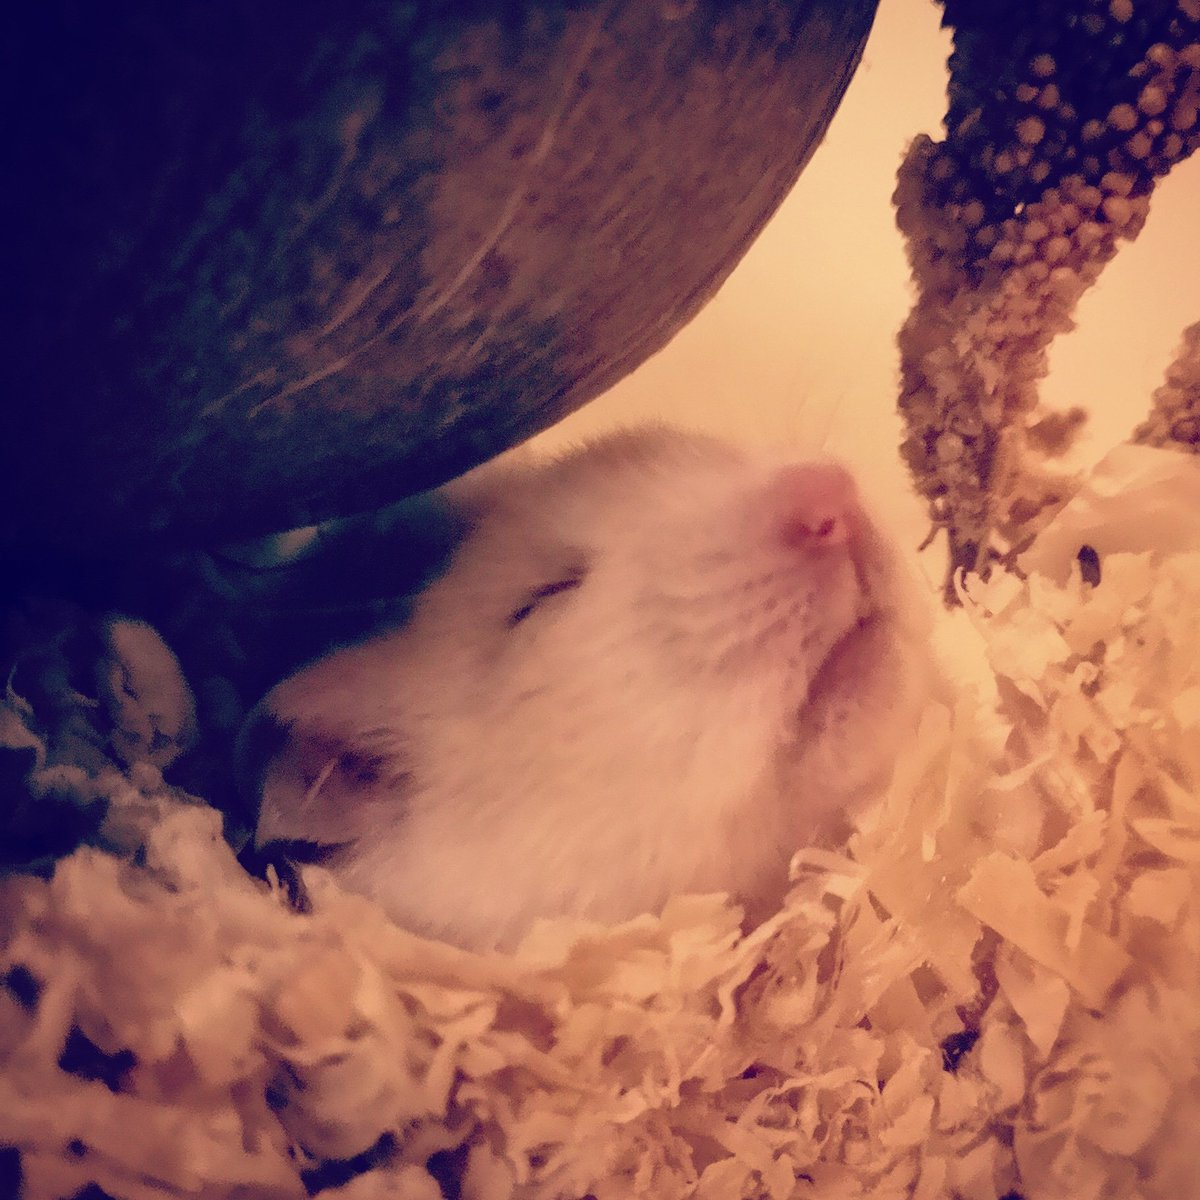 I like to sleep underneath my coconut against the glass in a little burrow i made 💜🙈 Where does your hamster sleep?  #hamsters #pets #petsofinstagram #hamster #photooftheday #cute #furry #smallanimal #pretty #ilovemypet #sleep #sleepyhamster #sleepypet #sleeping #question